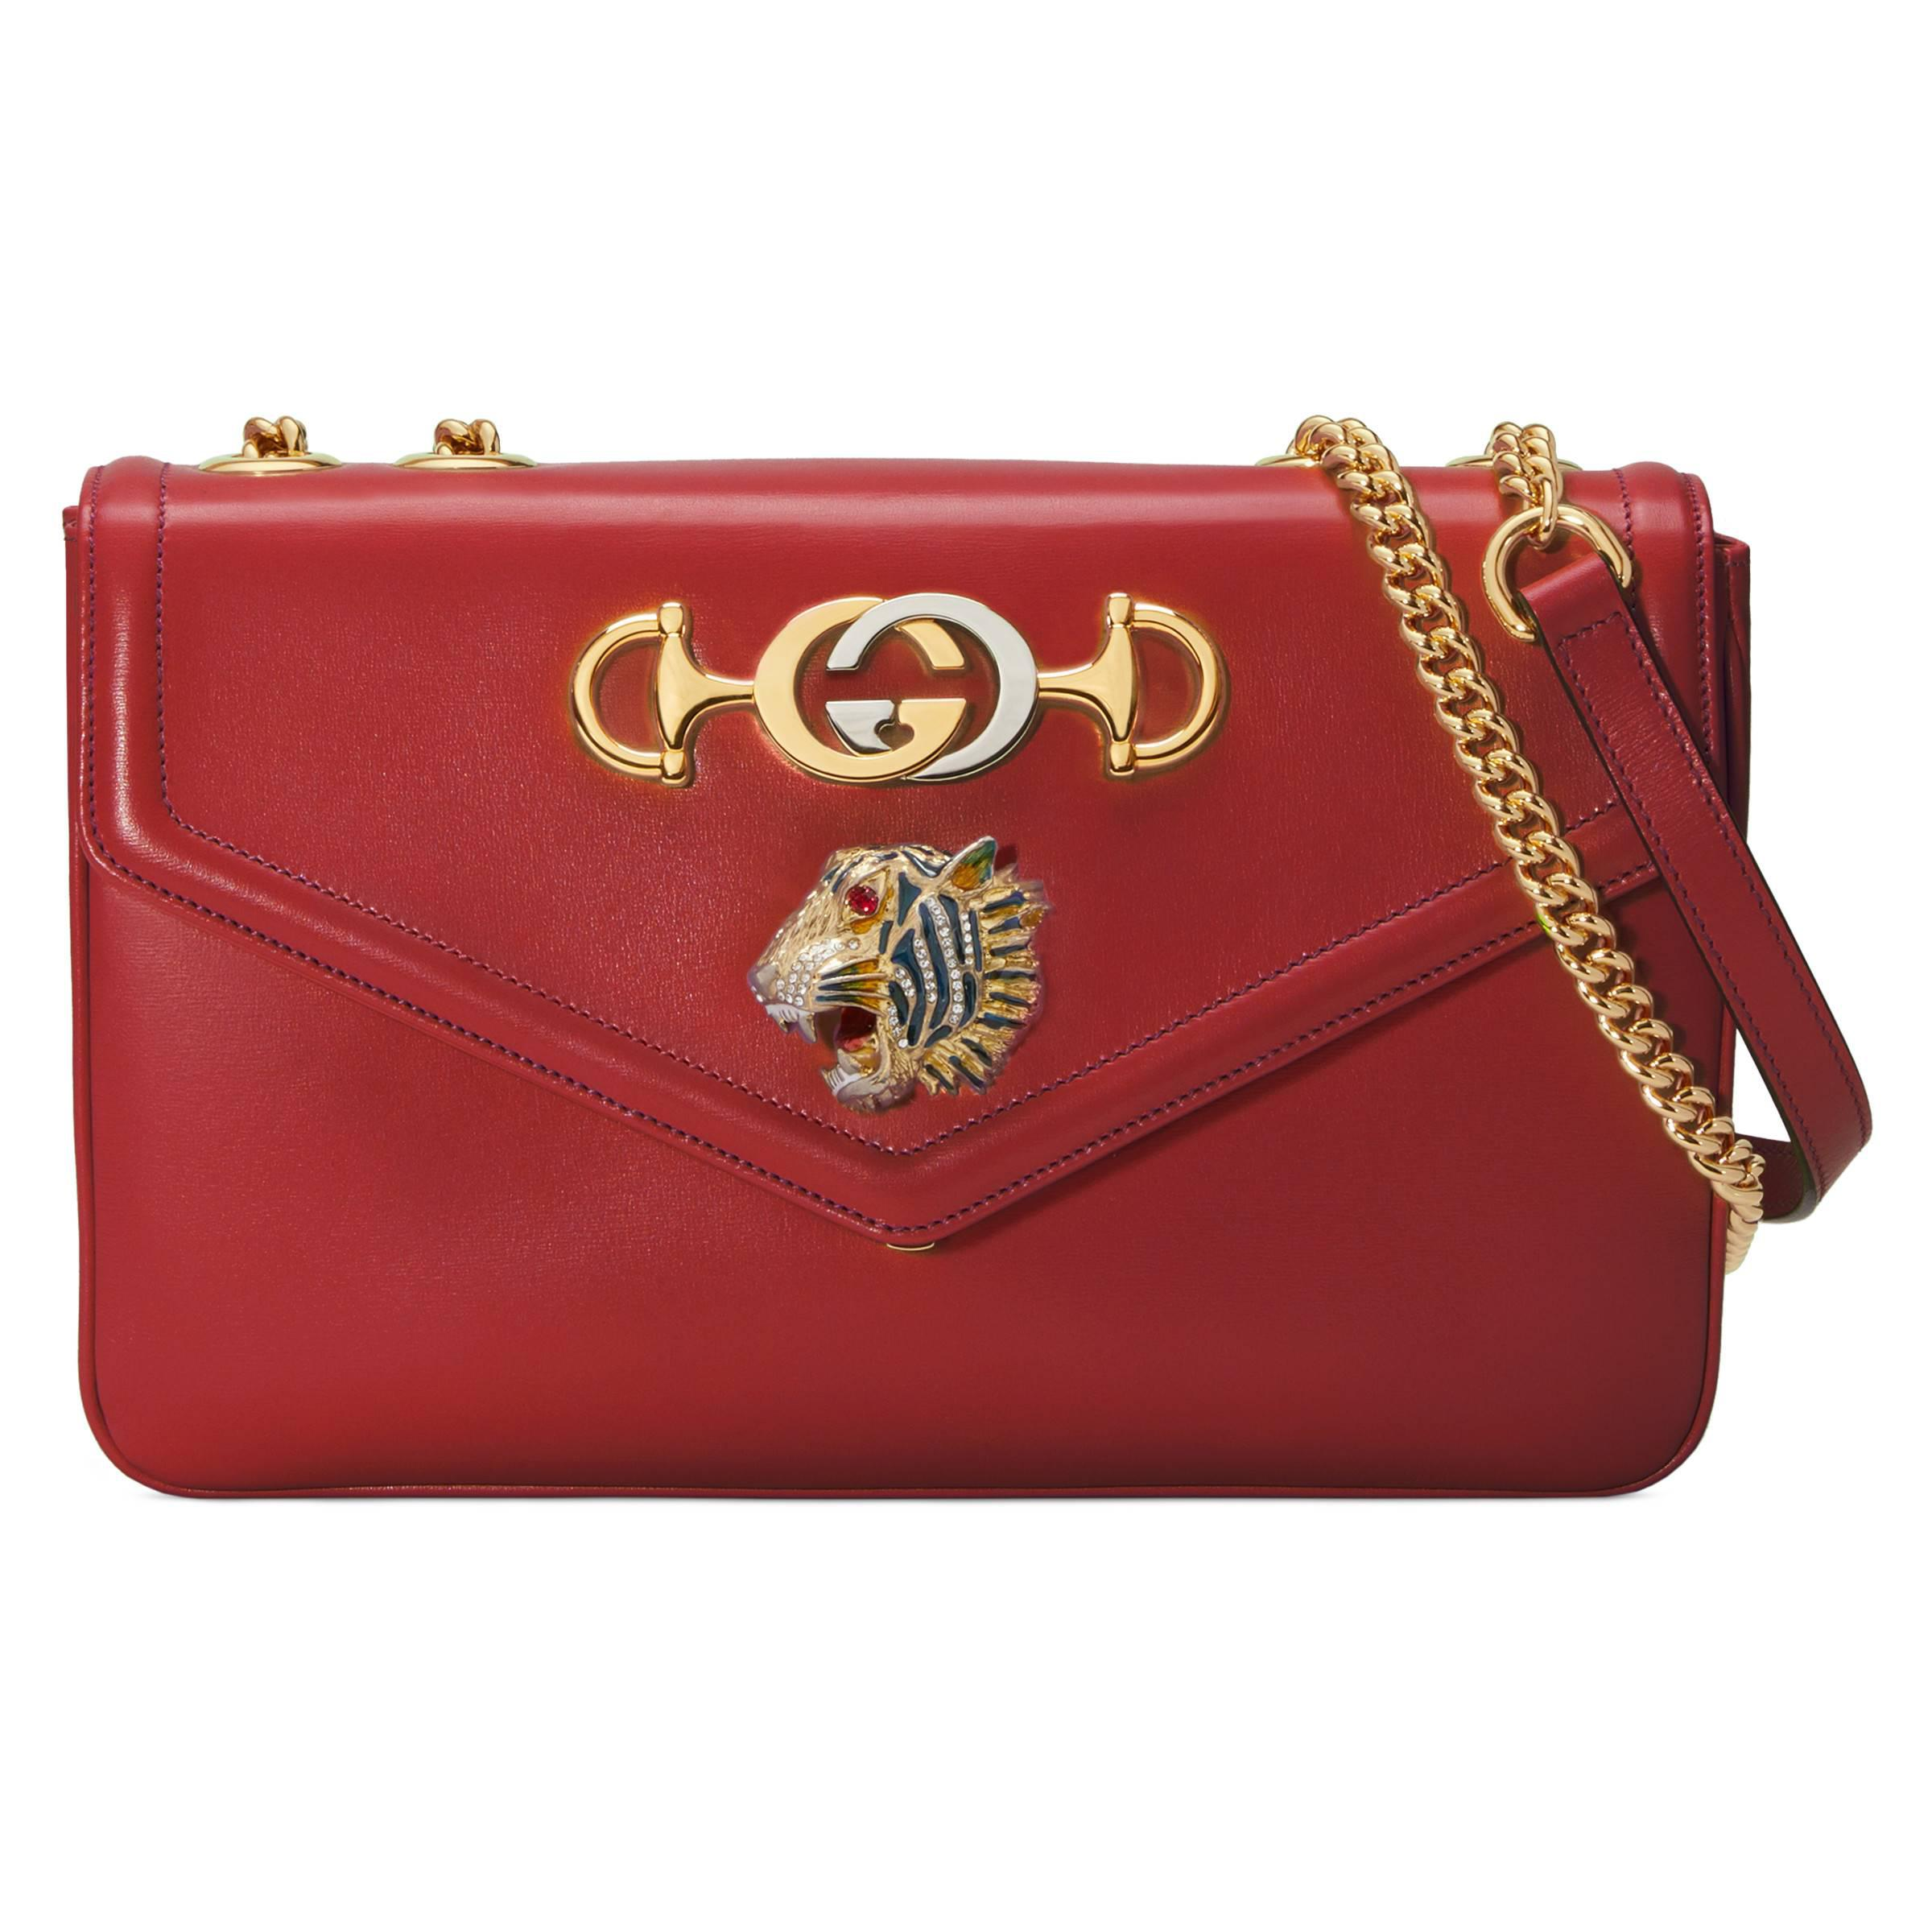 d7a25858744 Gucci - Red Rajah Medium Shoulder Bag - Lyst. View fullscreen